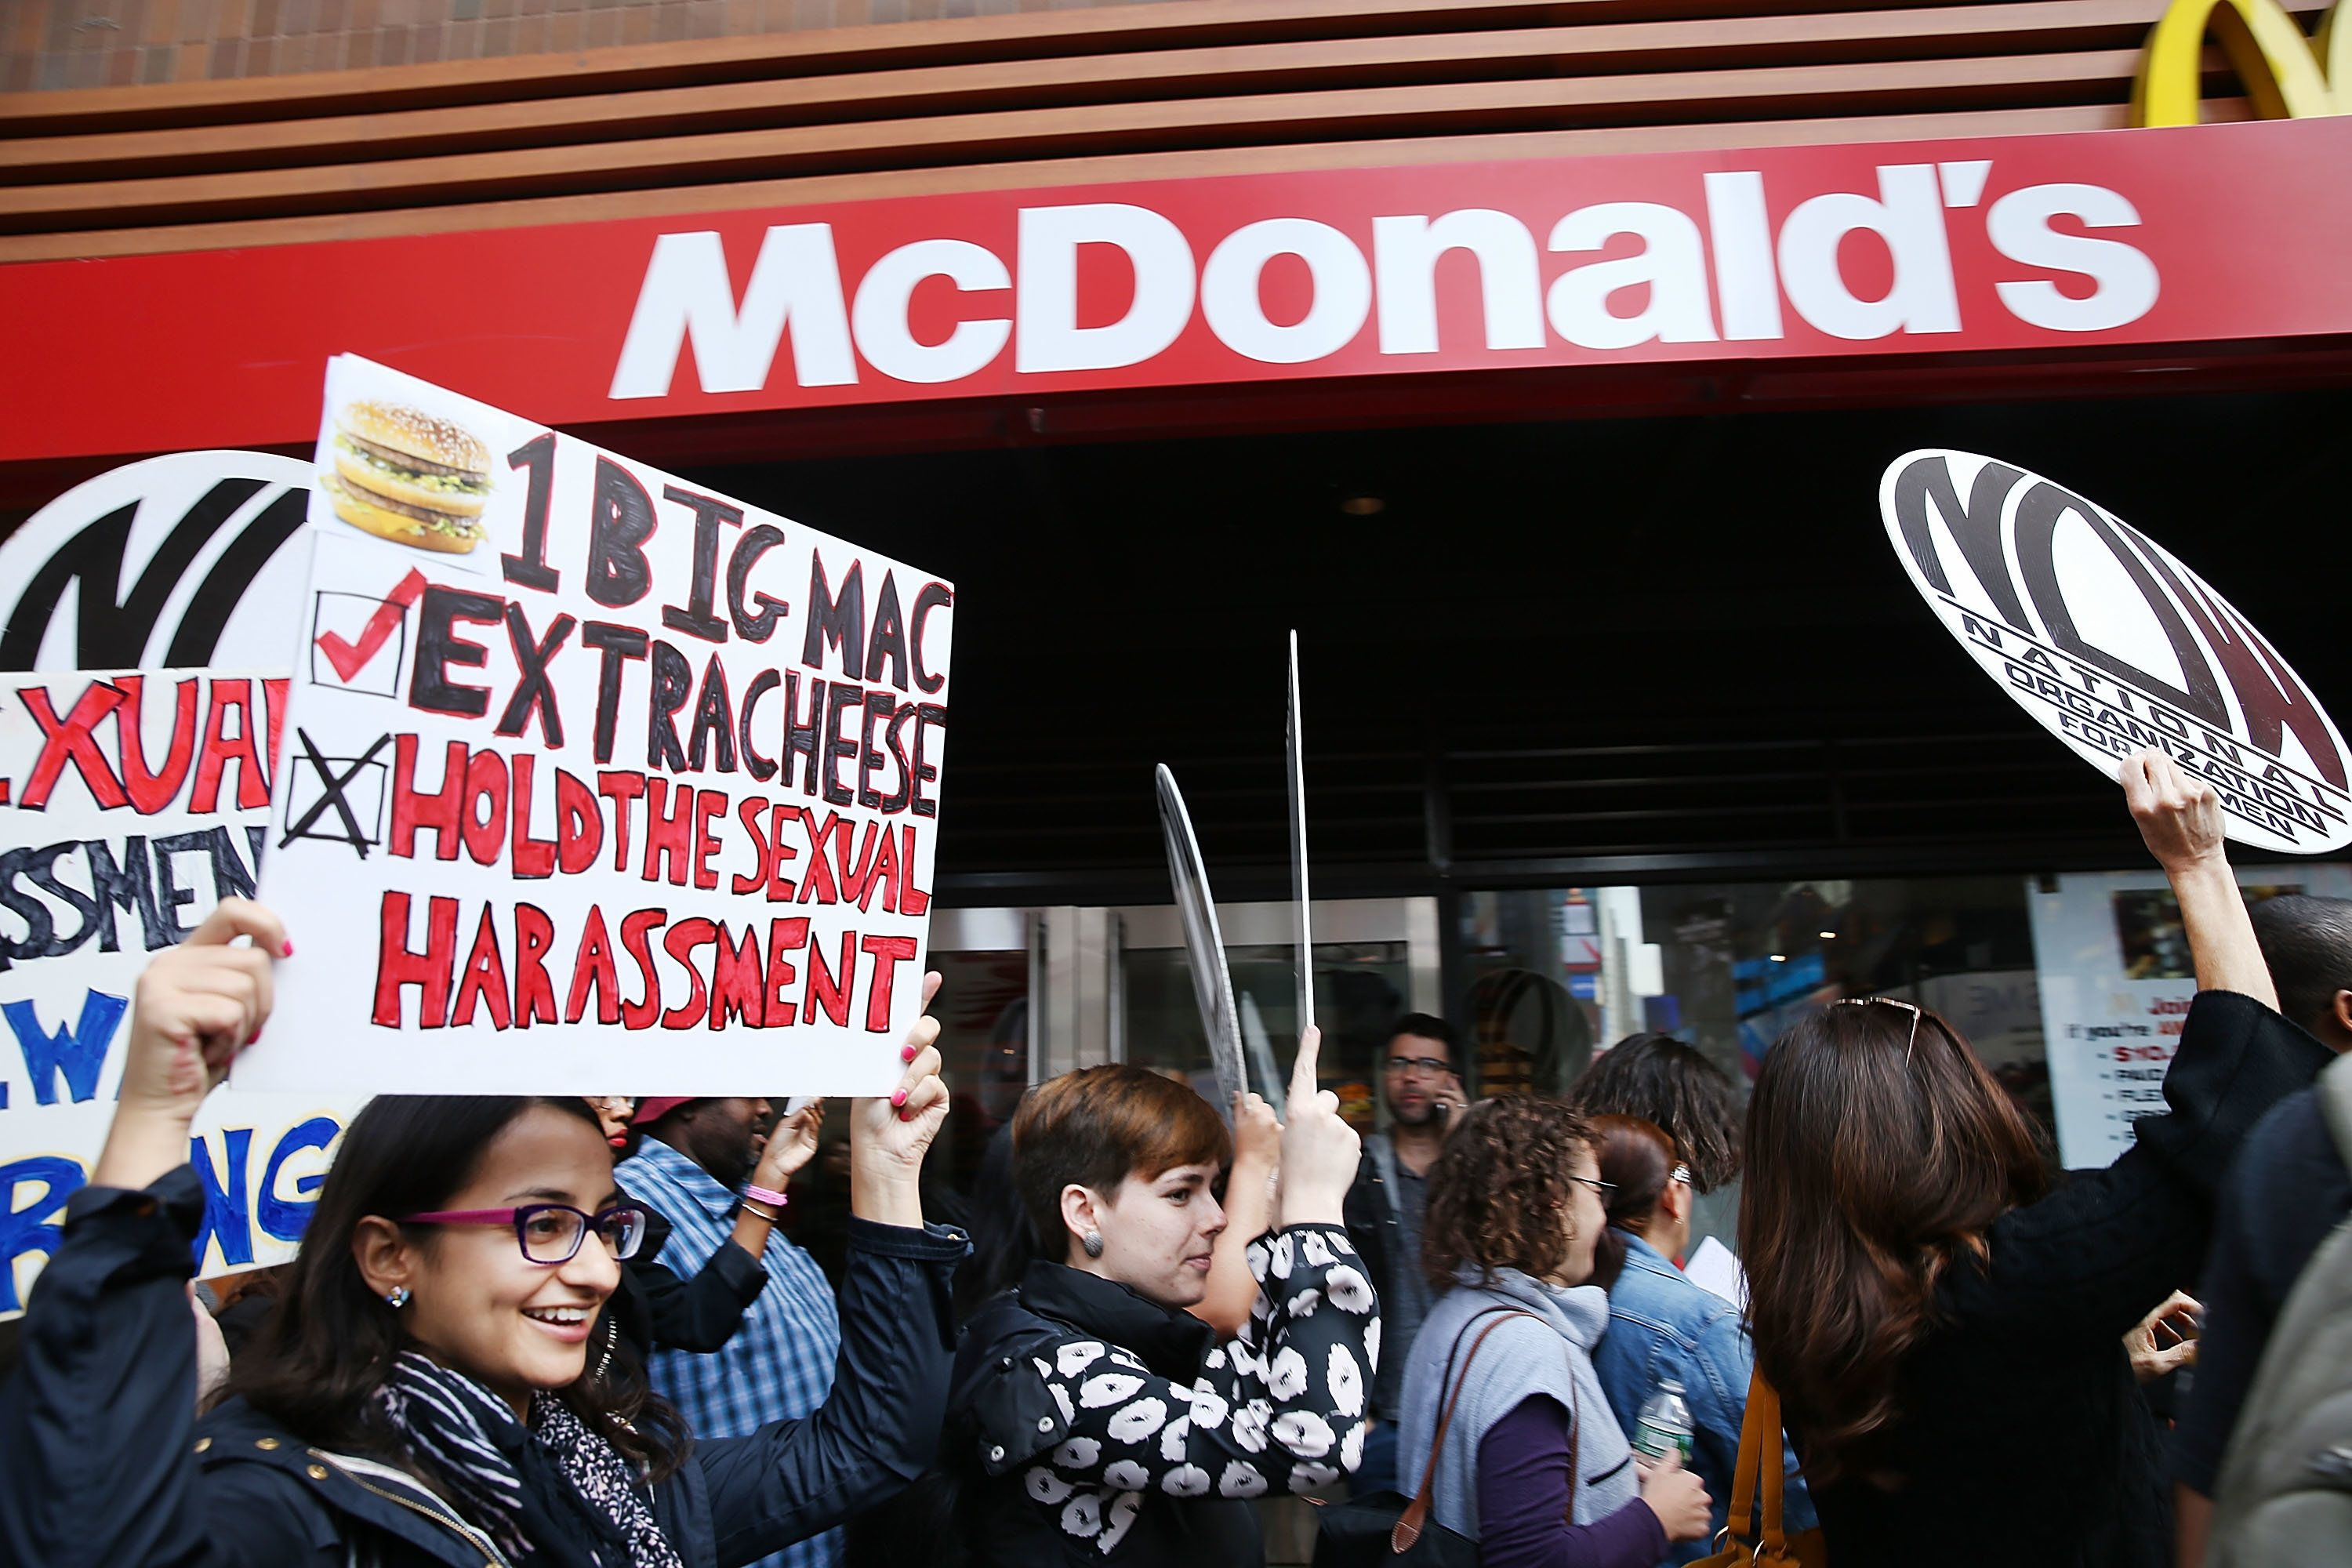 NEW YORK, NY - OCTOBER 06:  Protesters demonstrate outside of a McDonald's restaurant near Times Square after charges were brought against the company that they have ignored serious instances of sexual harassment on October 6, 2016 in New York City. According to 15 separate complaints that restaurant cooks, cashiers and other employees  filed with a federal agency over the past month, workers encountered numerous incidents of sexual harassment at some McDonald's restaurants.  (Photo by Spencer Platt/Getty Images)